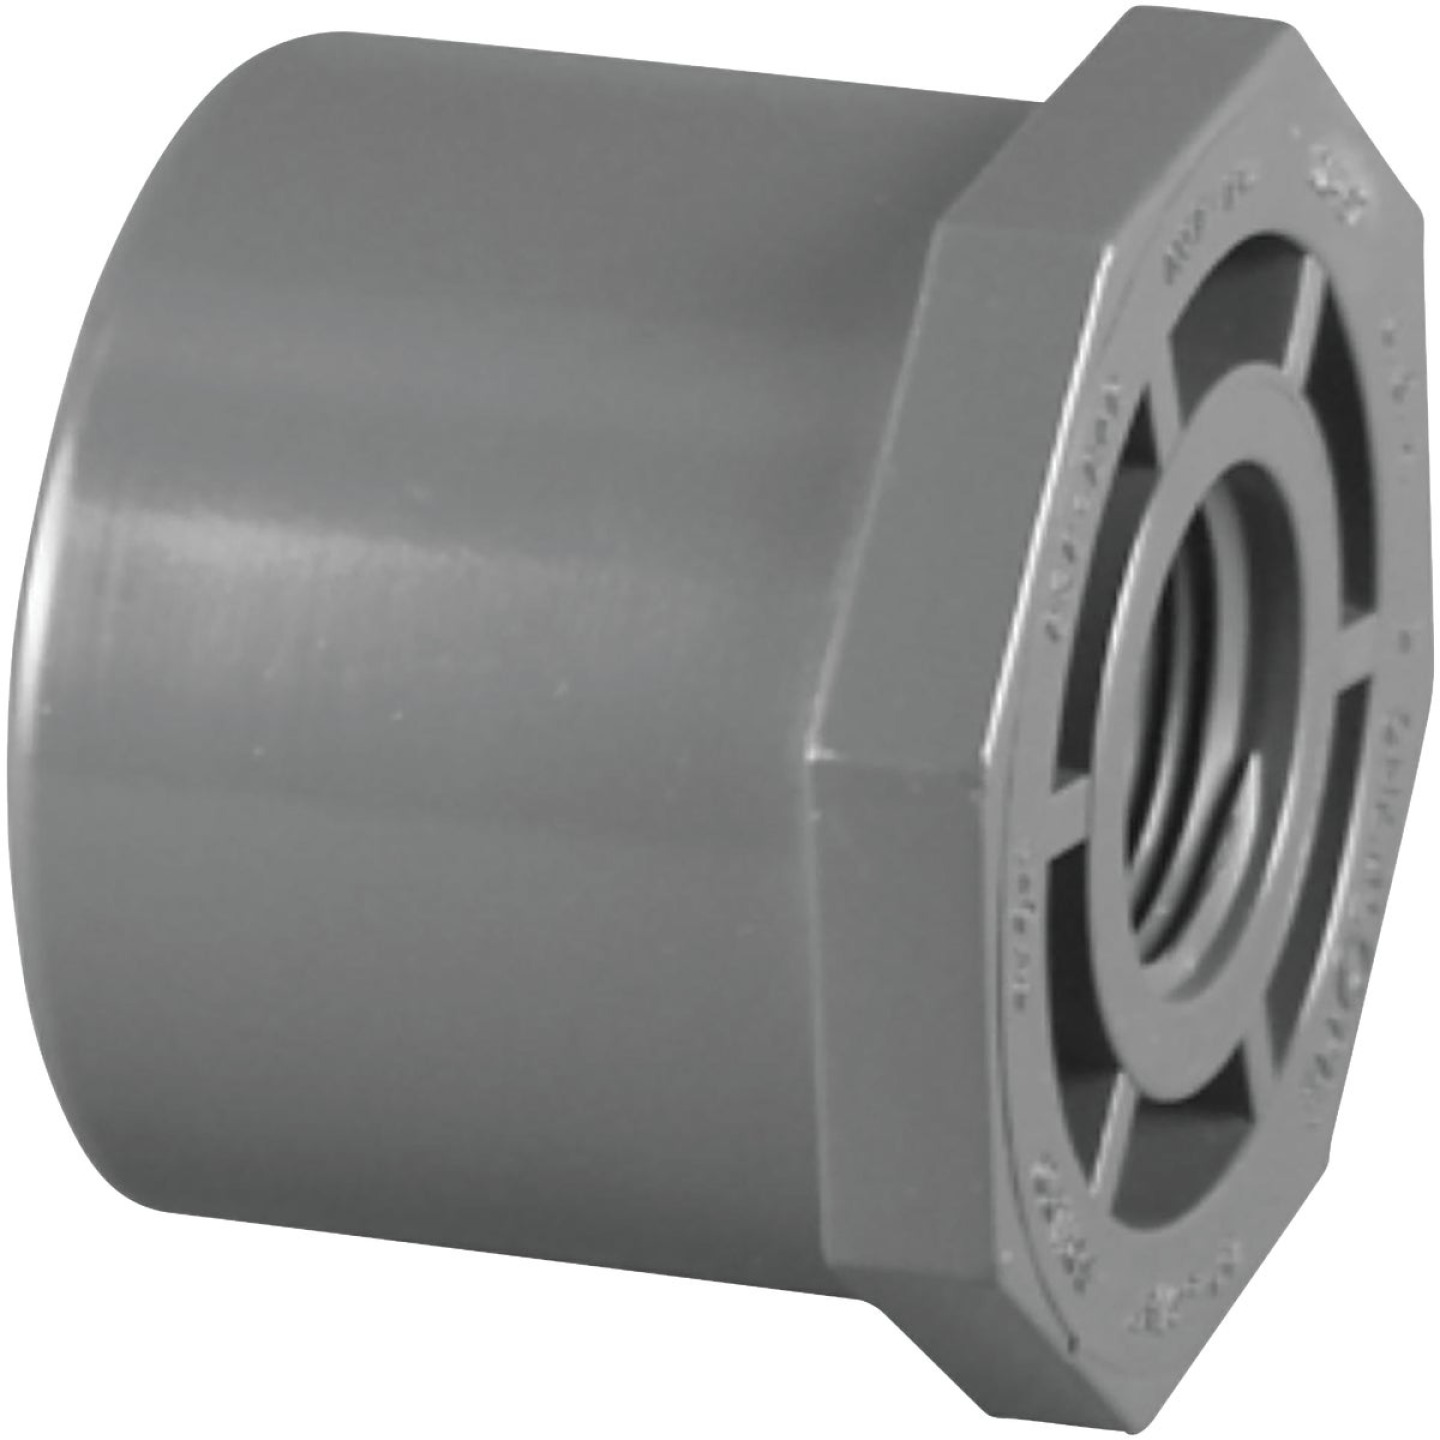 Charlotte Pipe 1-1/4 In. Spigot x 3/4 In. FIP Schedule 80 Reducing PVC Bushing Image 1